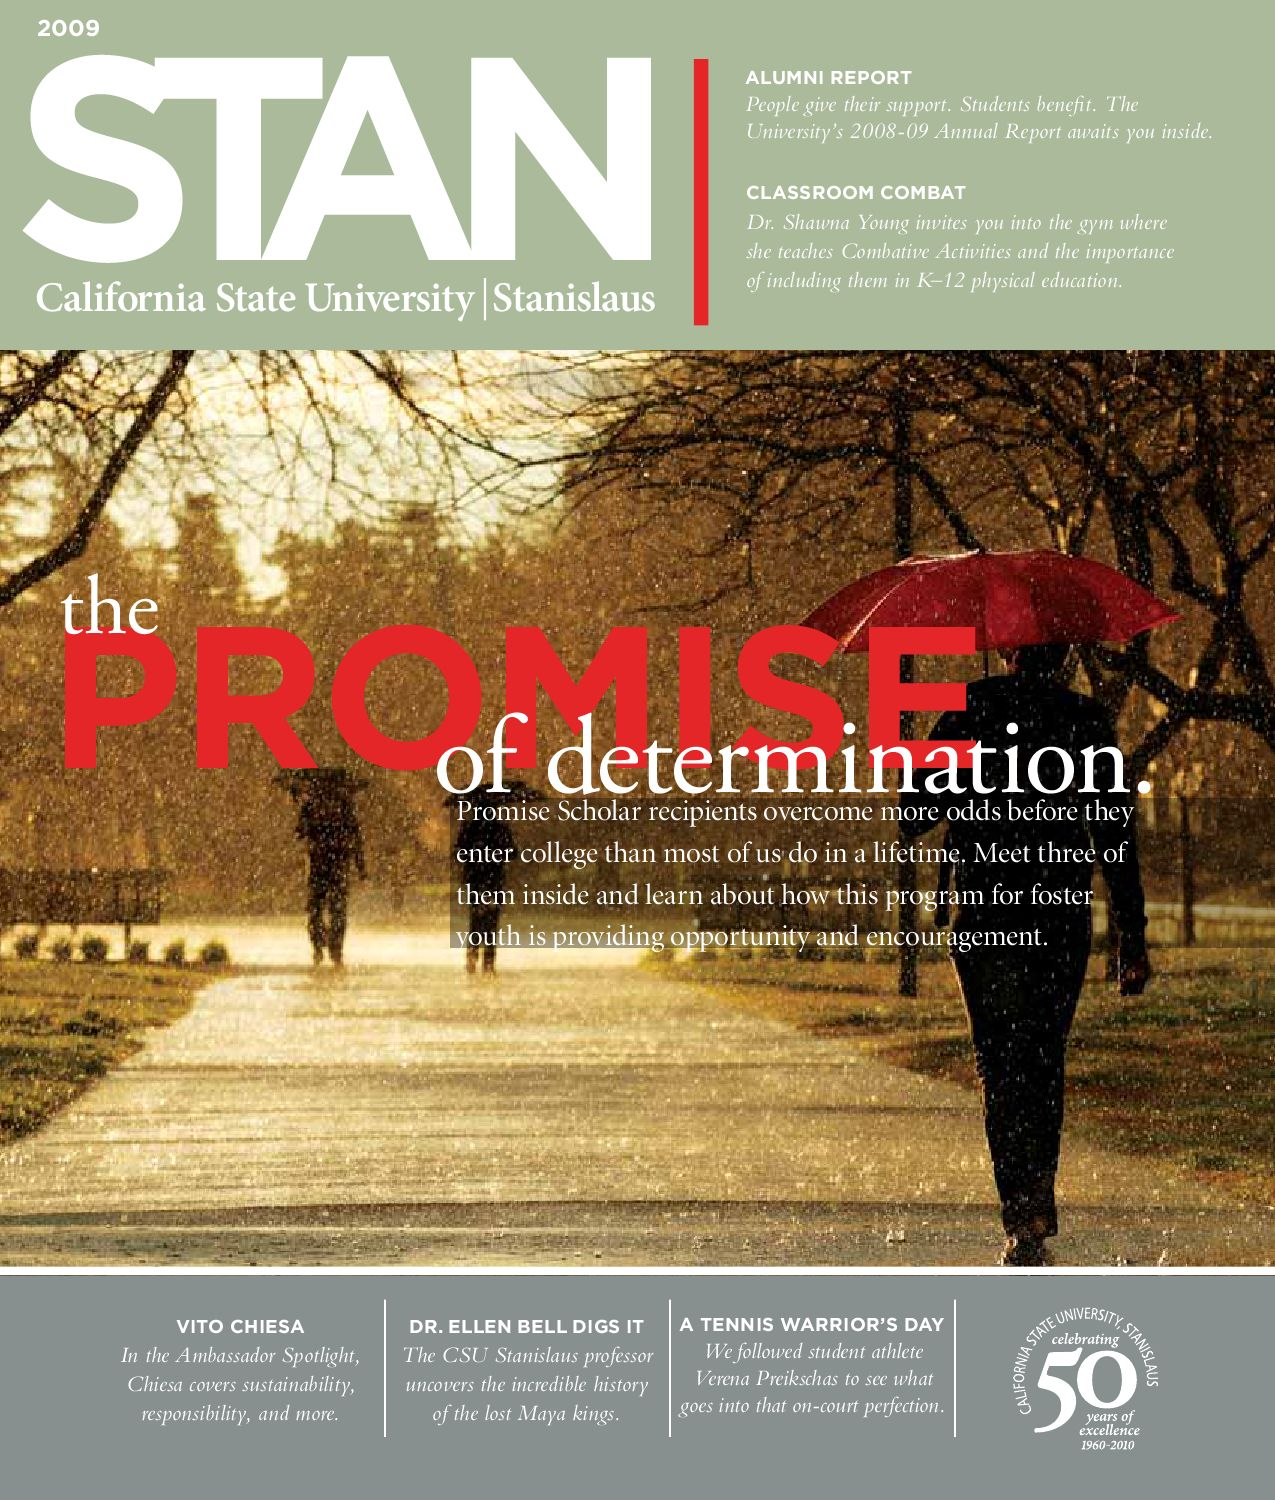 stan magazine by csu stanislaus visual branding issuu